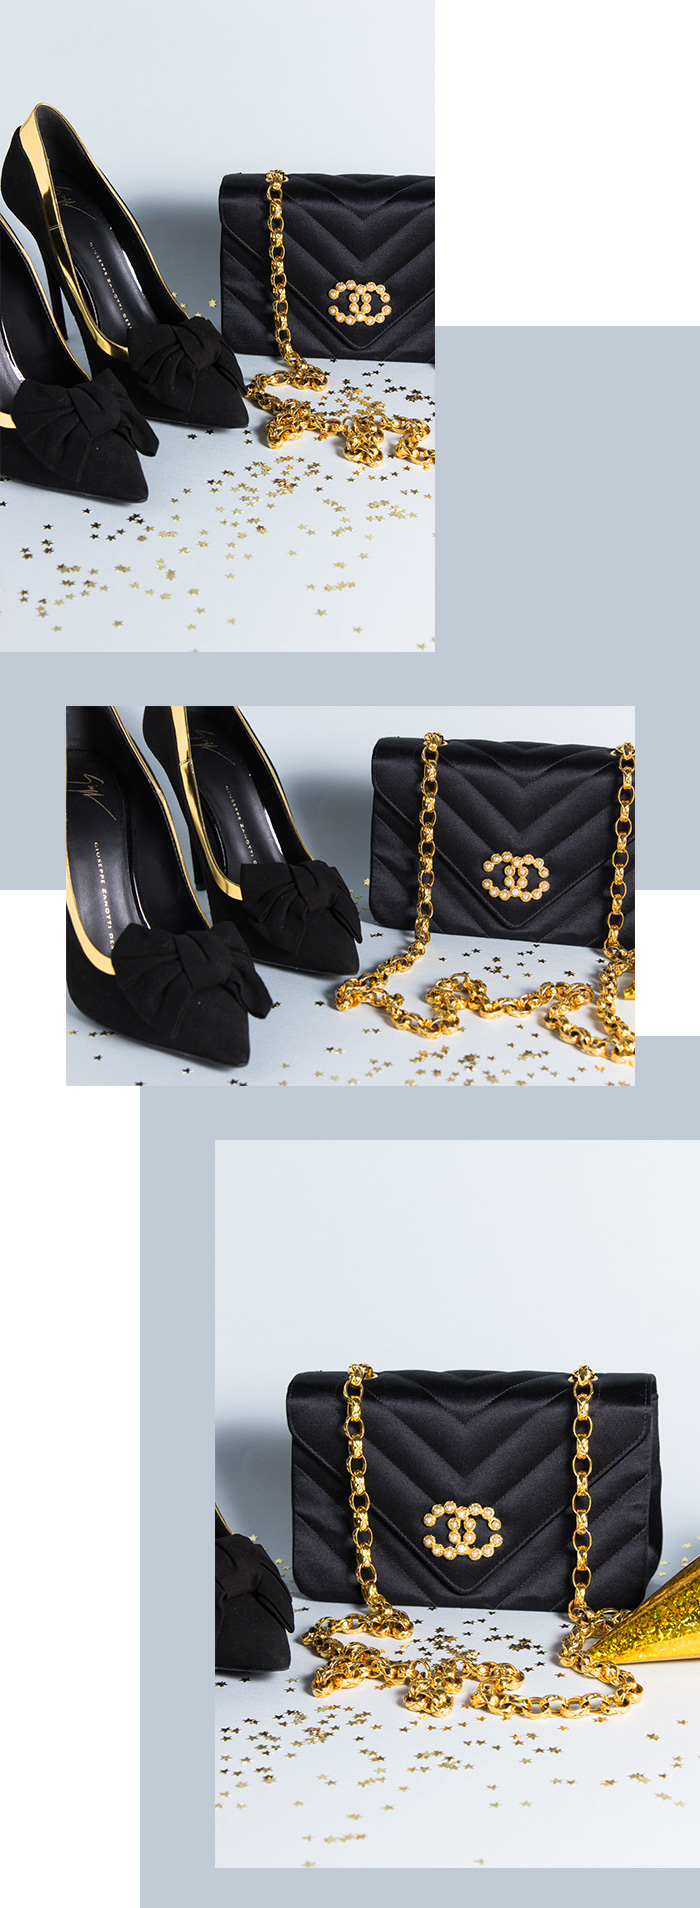 Party-Time - Accessoires - Silvester 2017 Chanel